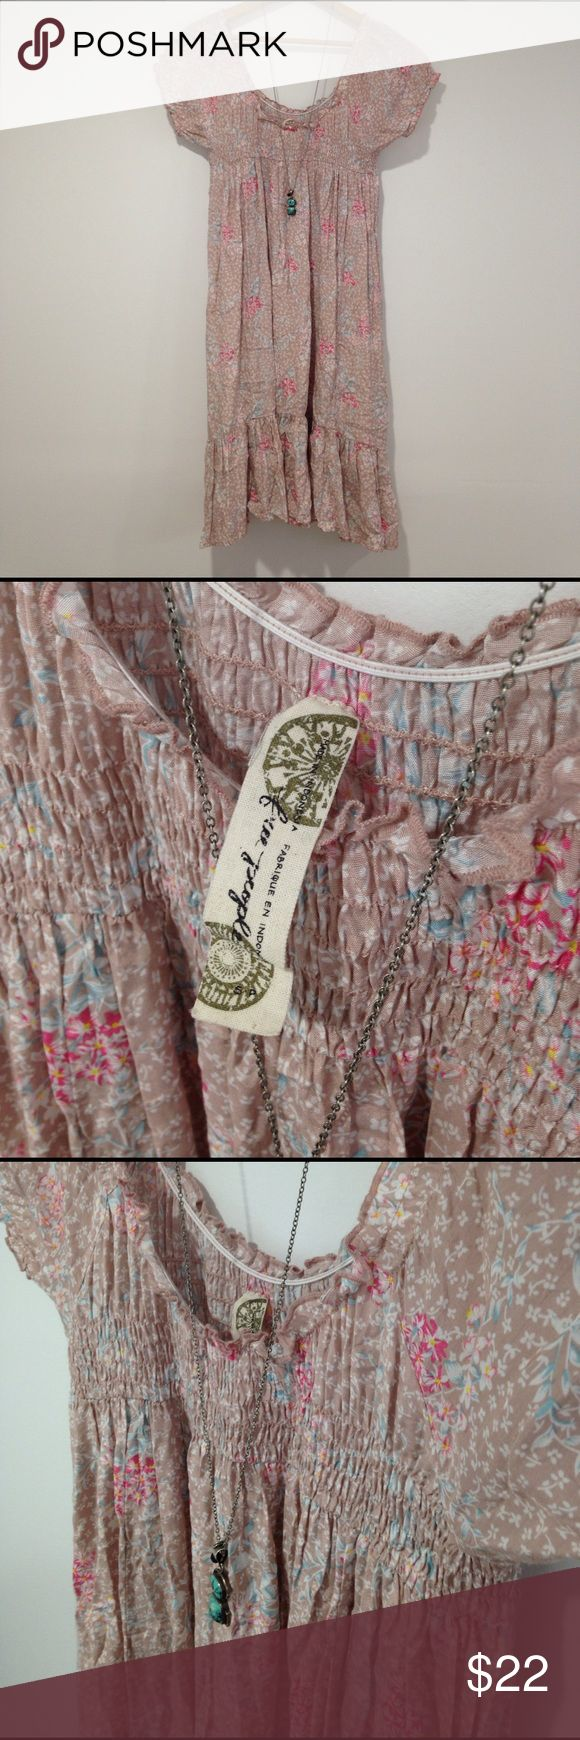 Free People floral smocked peasant summer dress S Once again I'm suffering from sellers remorse! Barely worn taupe, pink and blue floral Free People dress. Smocked top with elastic cap sleeves and a ruffle bottom. Beautiful neutral print that looks great alone or with a jean jacket. Size small but the looser silhouette could accommodate a medium. Free People Dresses